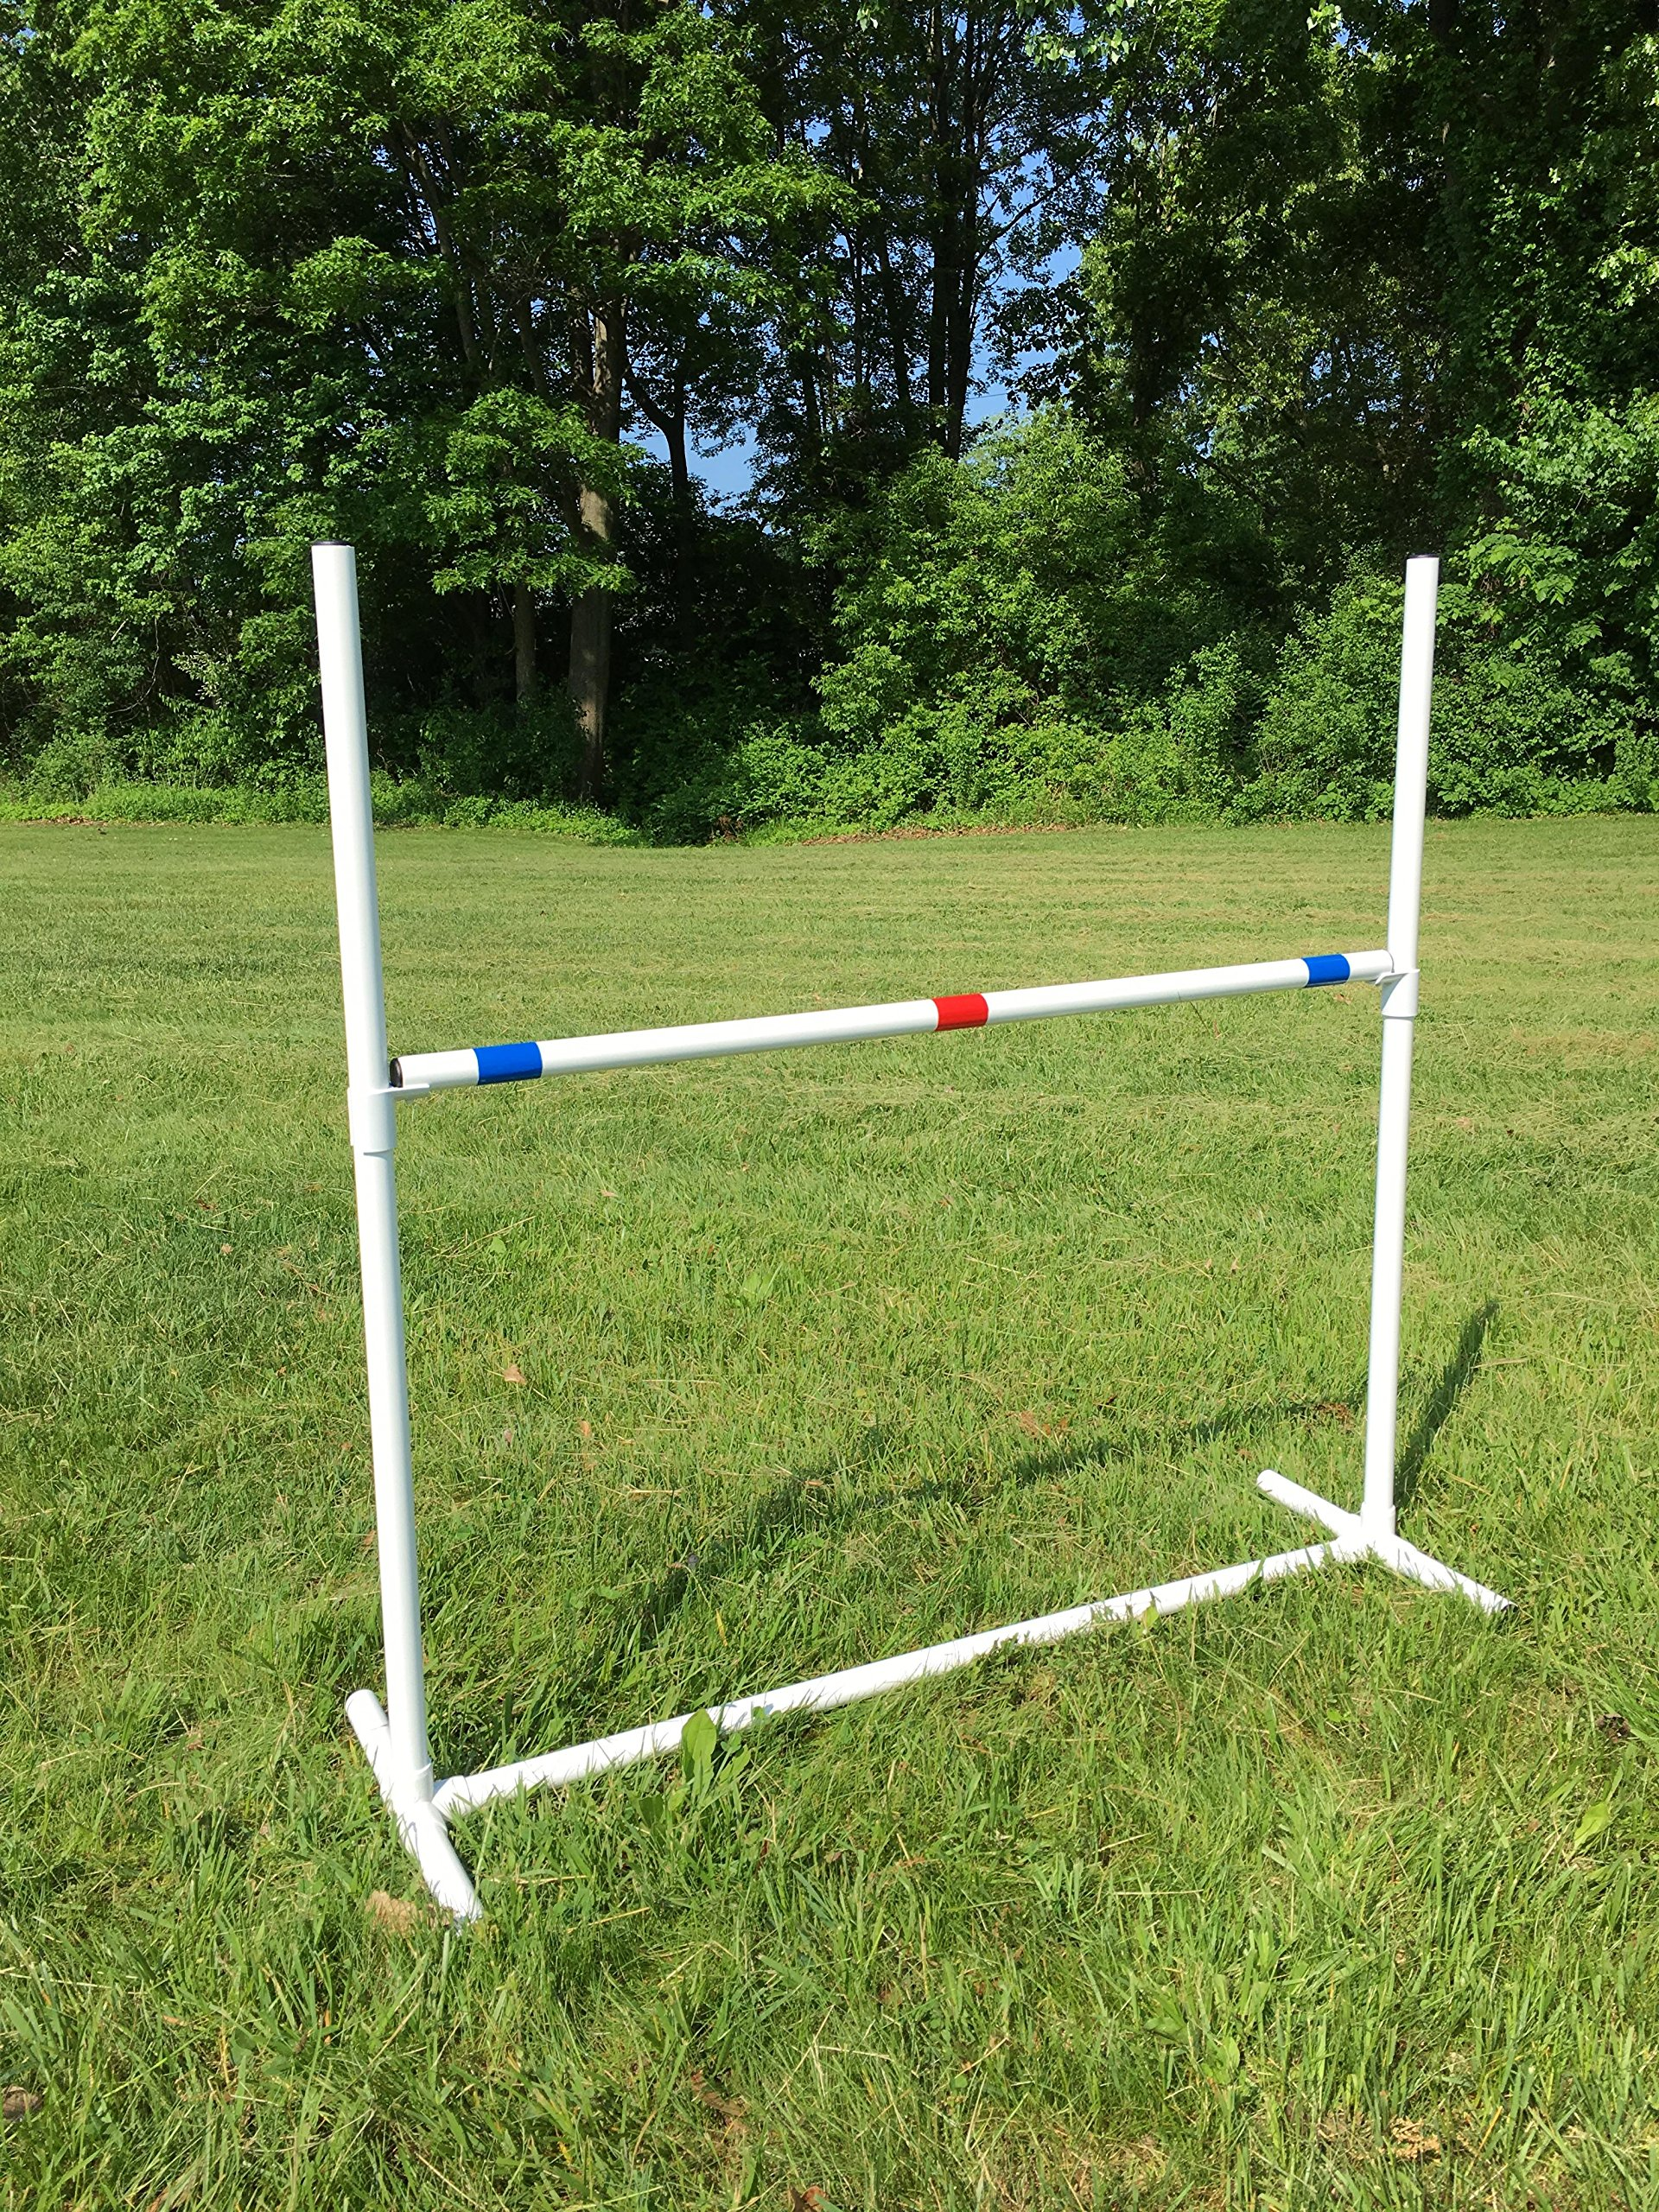 Dog Agility Equipment Single Bar Jumps | Set of 2 jumps by Dog Agility Shop, LLC (Image #2)